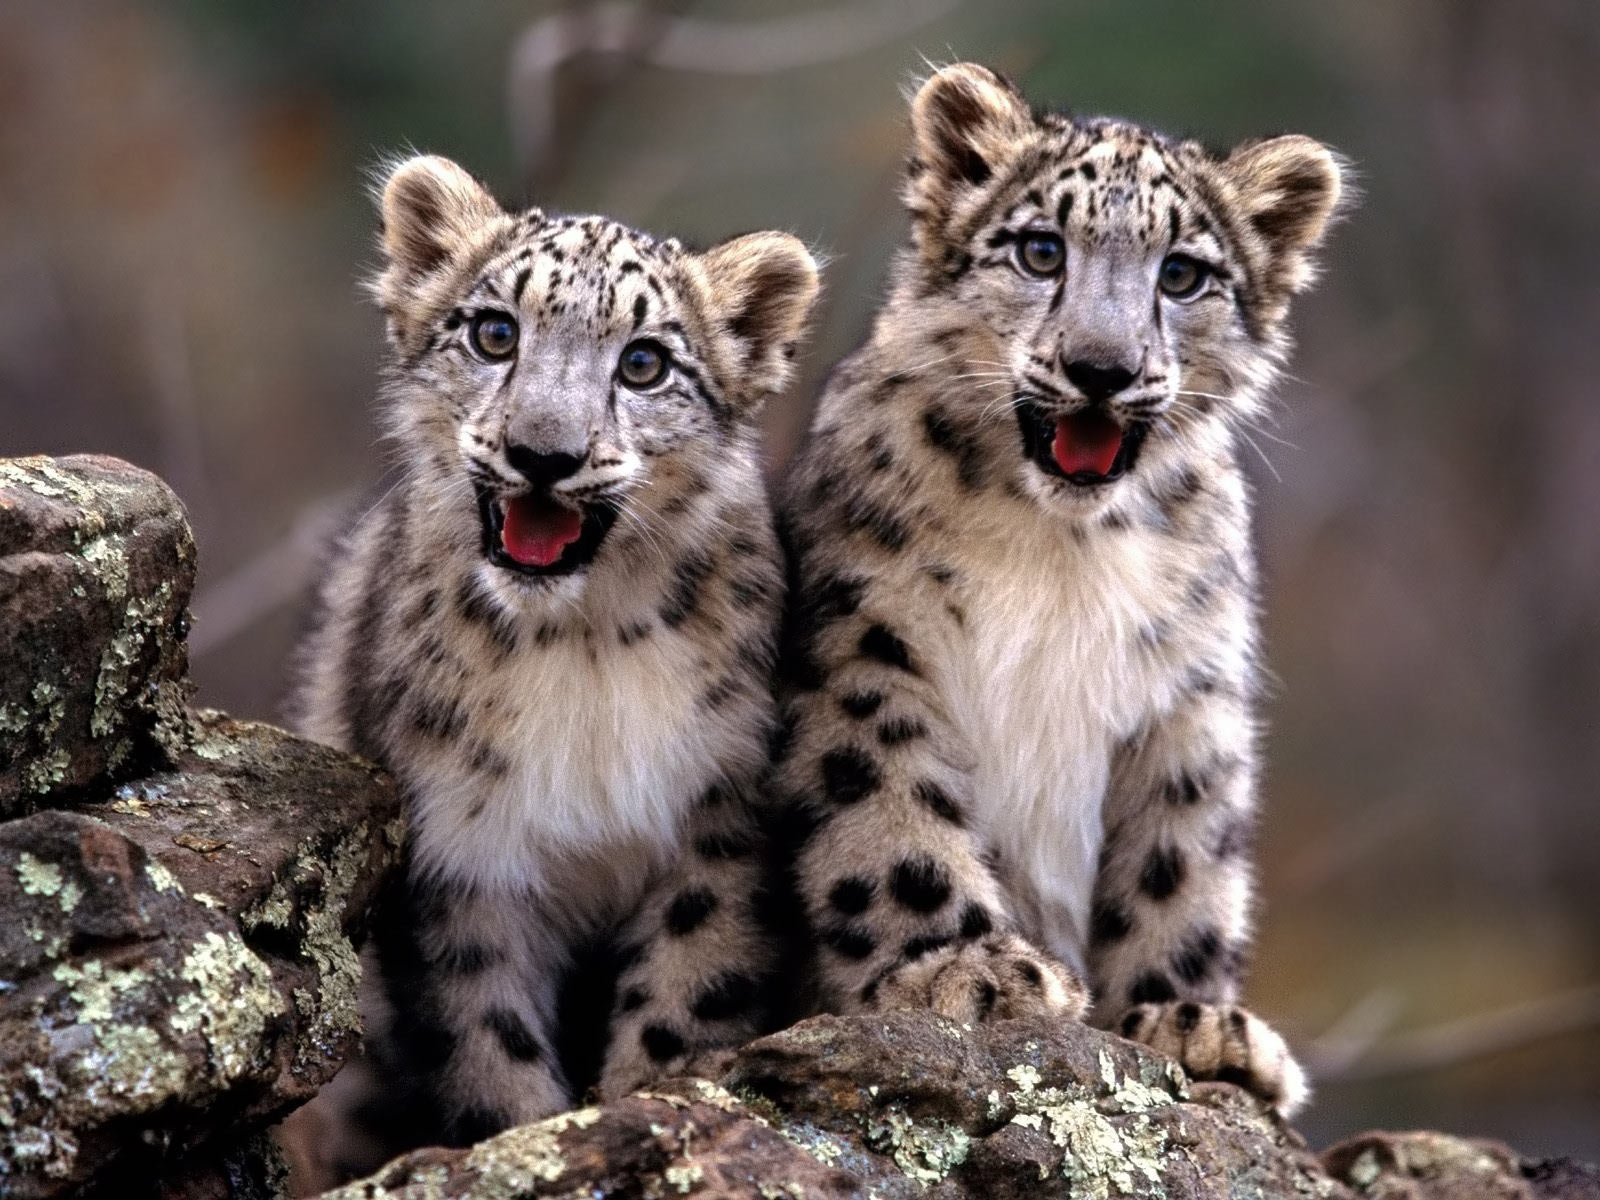 Baby Cheetah Wallpapers Android - Wickedsa com